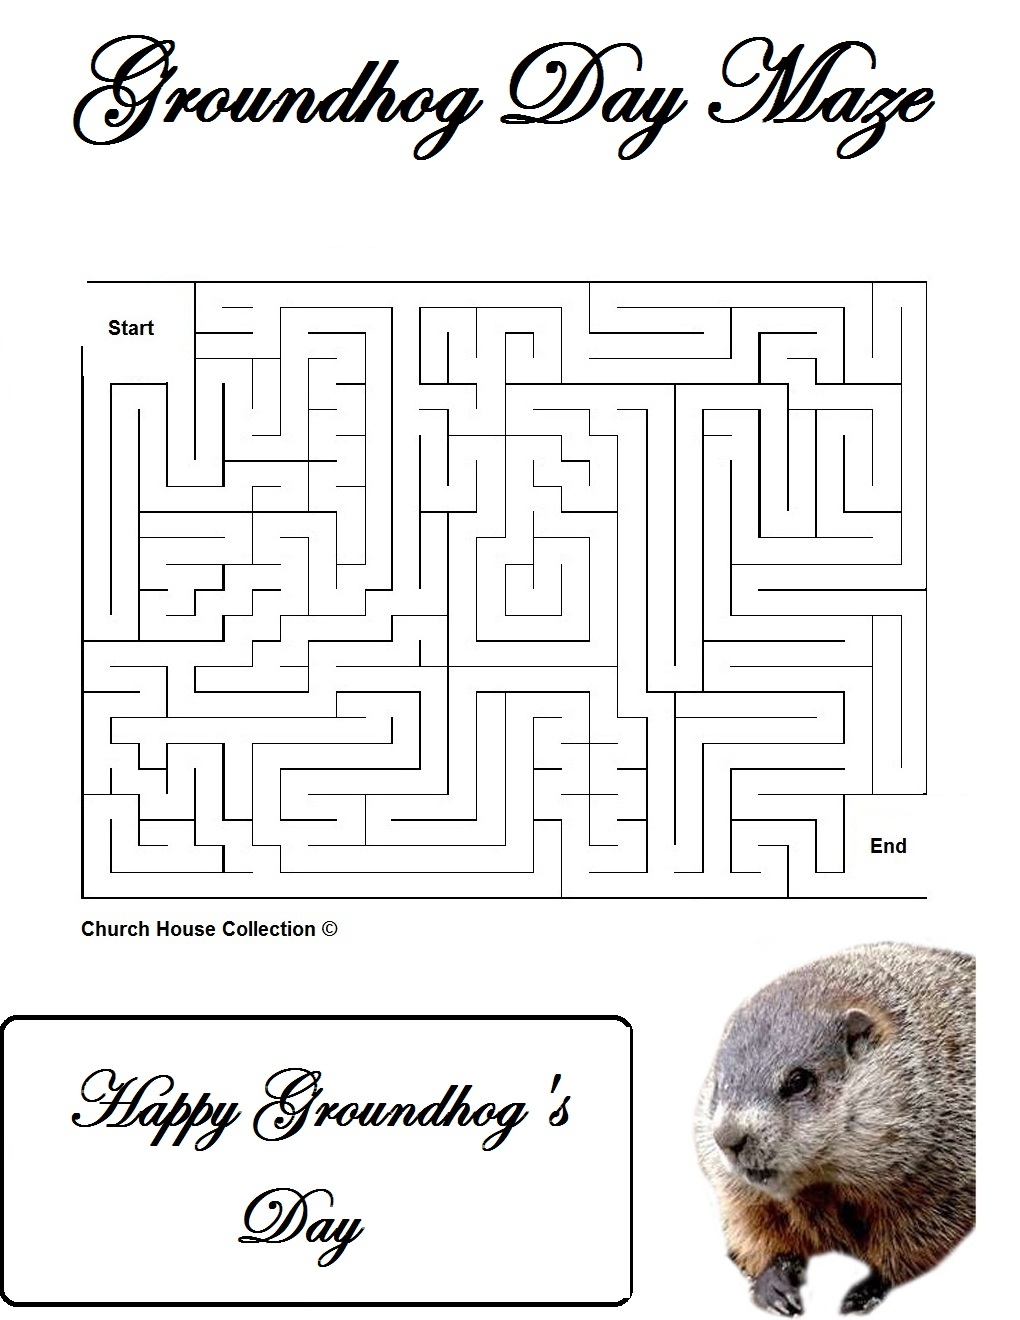 Groundhog Day Mazes For School – Groundhog Day Worksheets Free